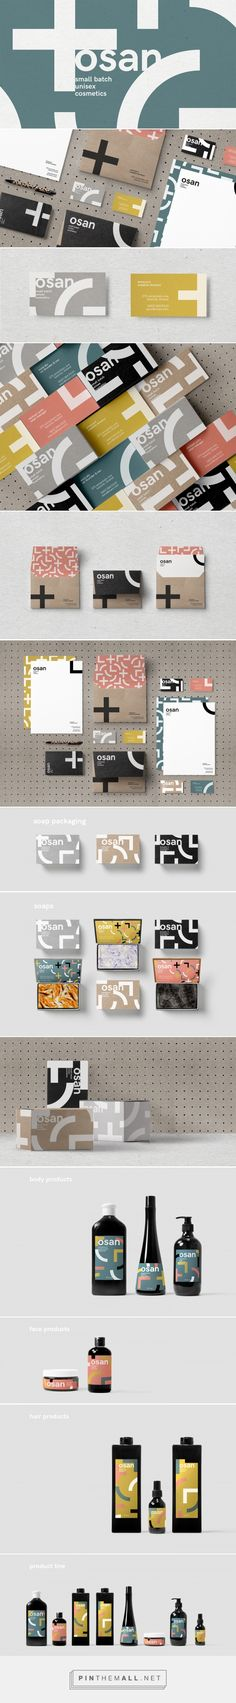 Osan Cosmetics Branding by Ronnie Alley | Fivestar Branding Agency – Design and Branding Agency & Curated Inspiration Gallery